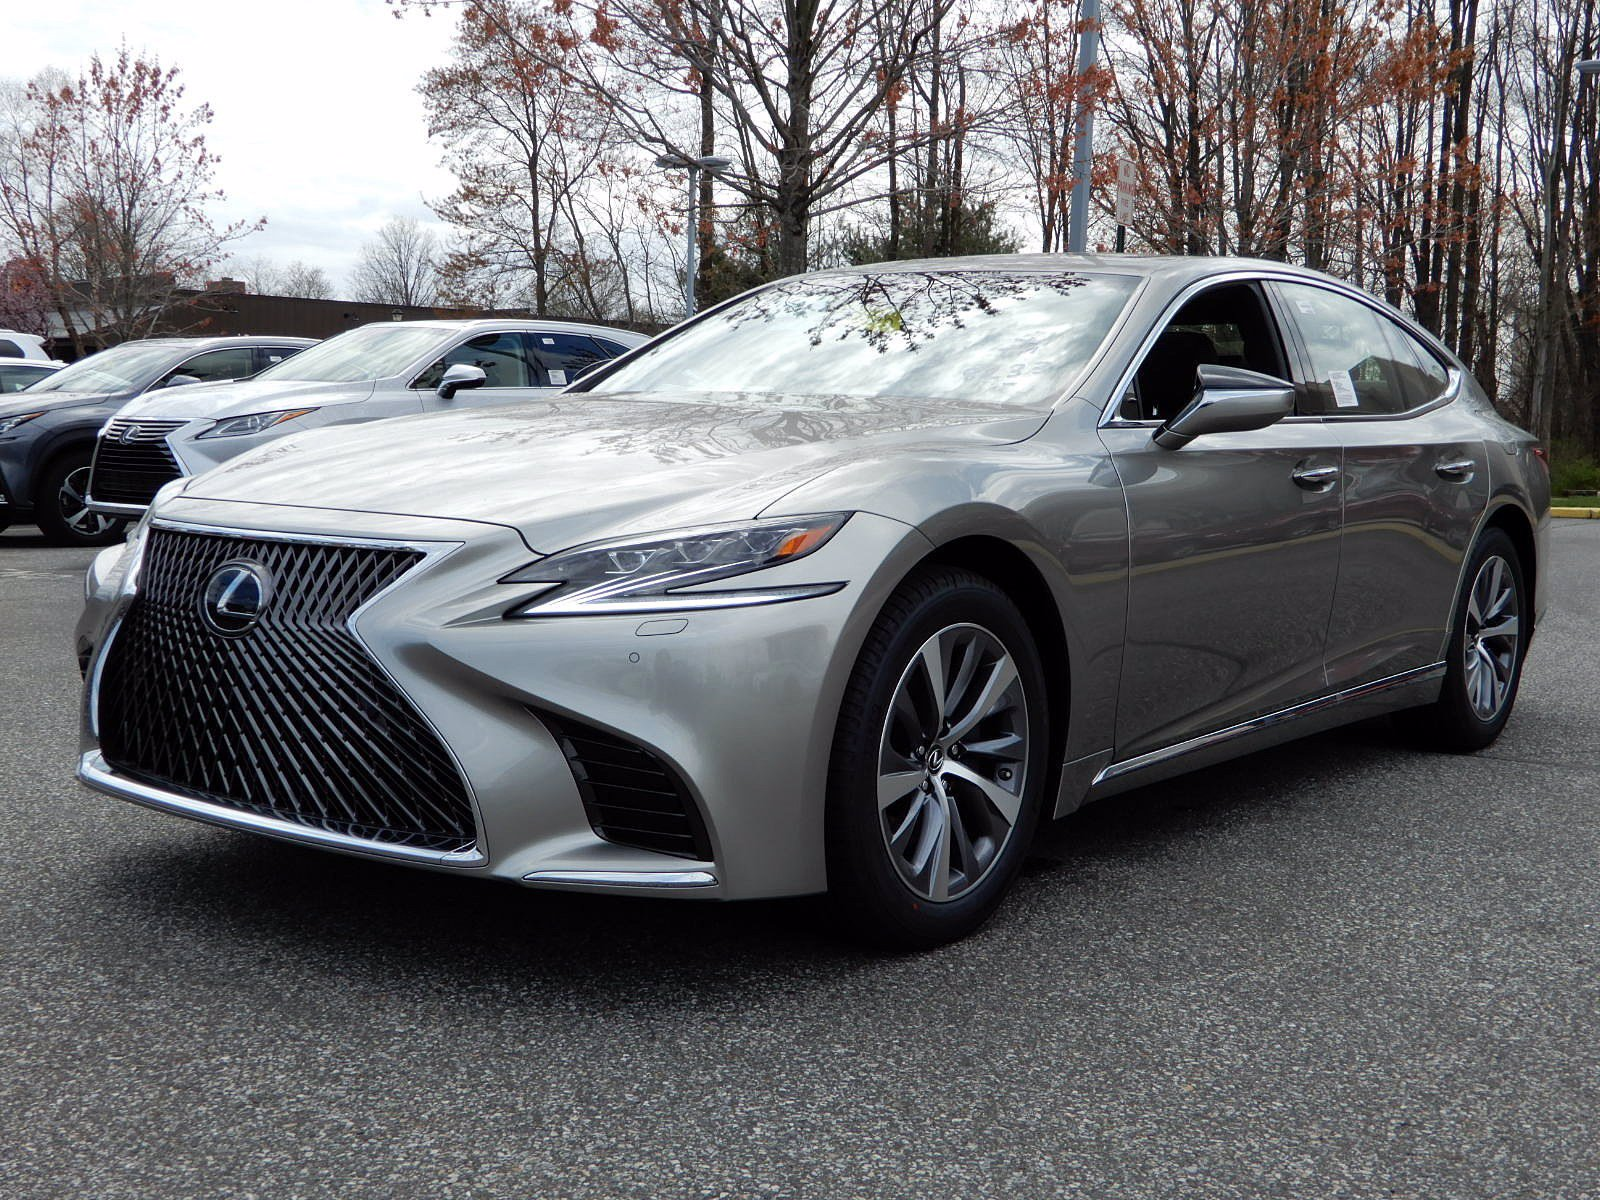 New 2019 Lexus LS 500 4dr Car in Mt. Laurel #N41245 ...